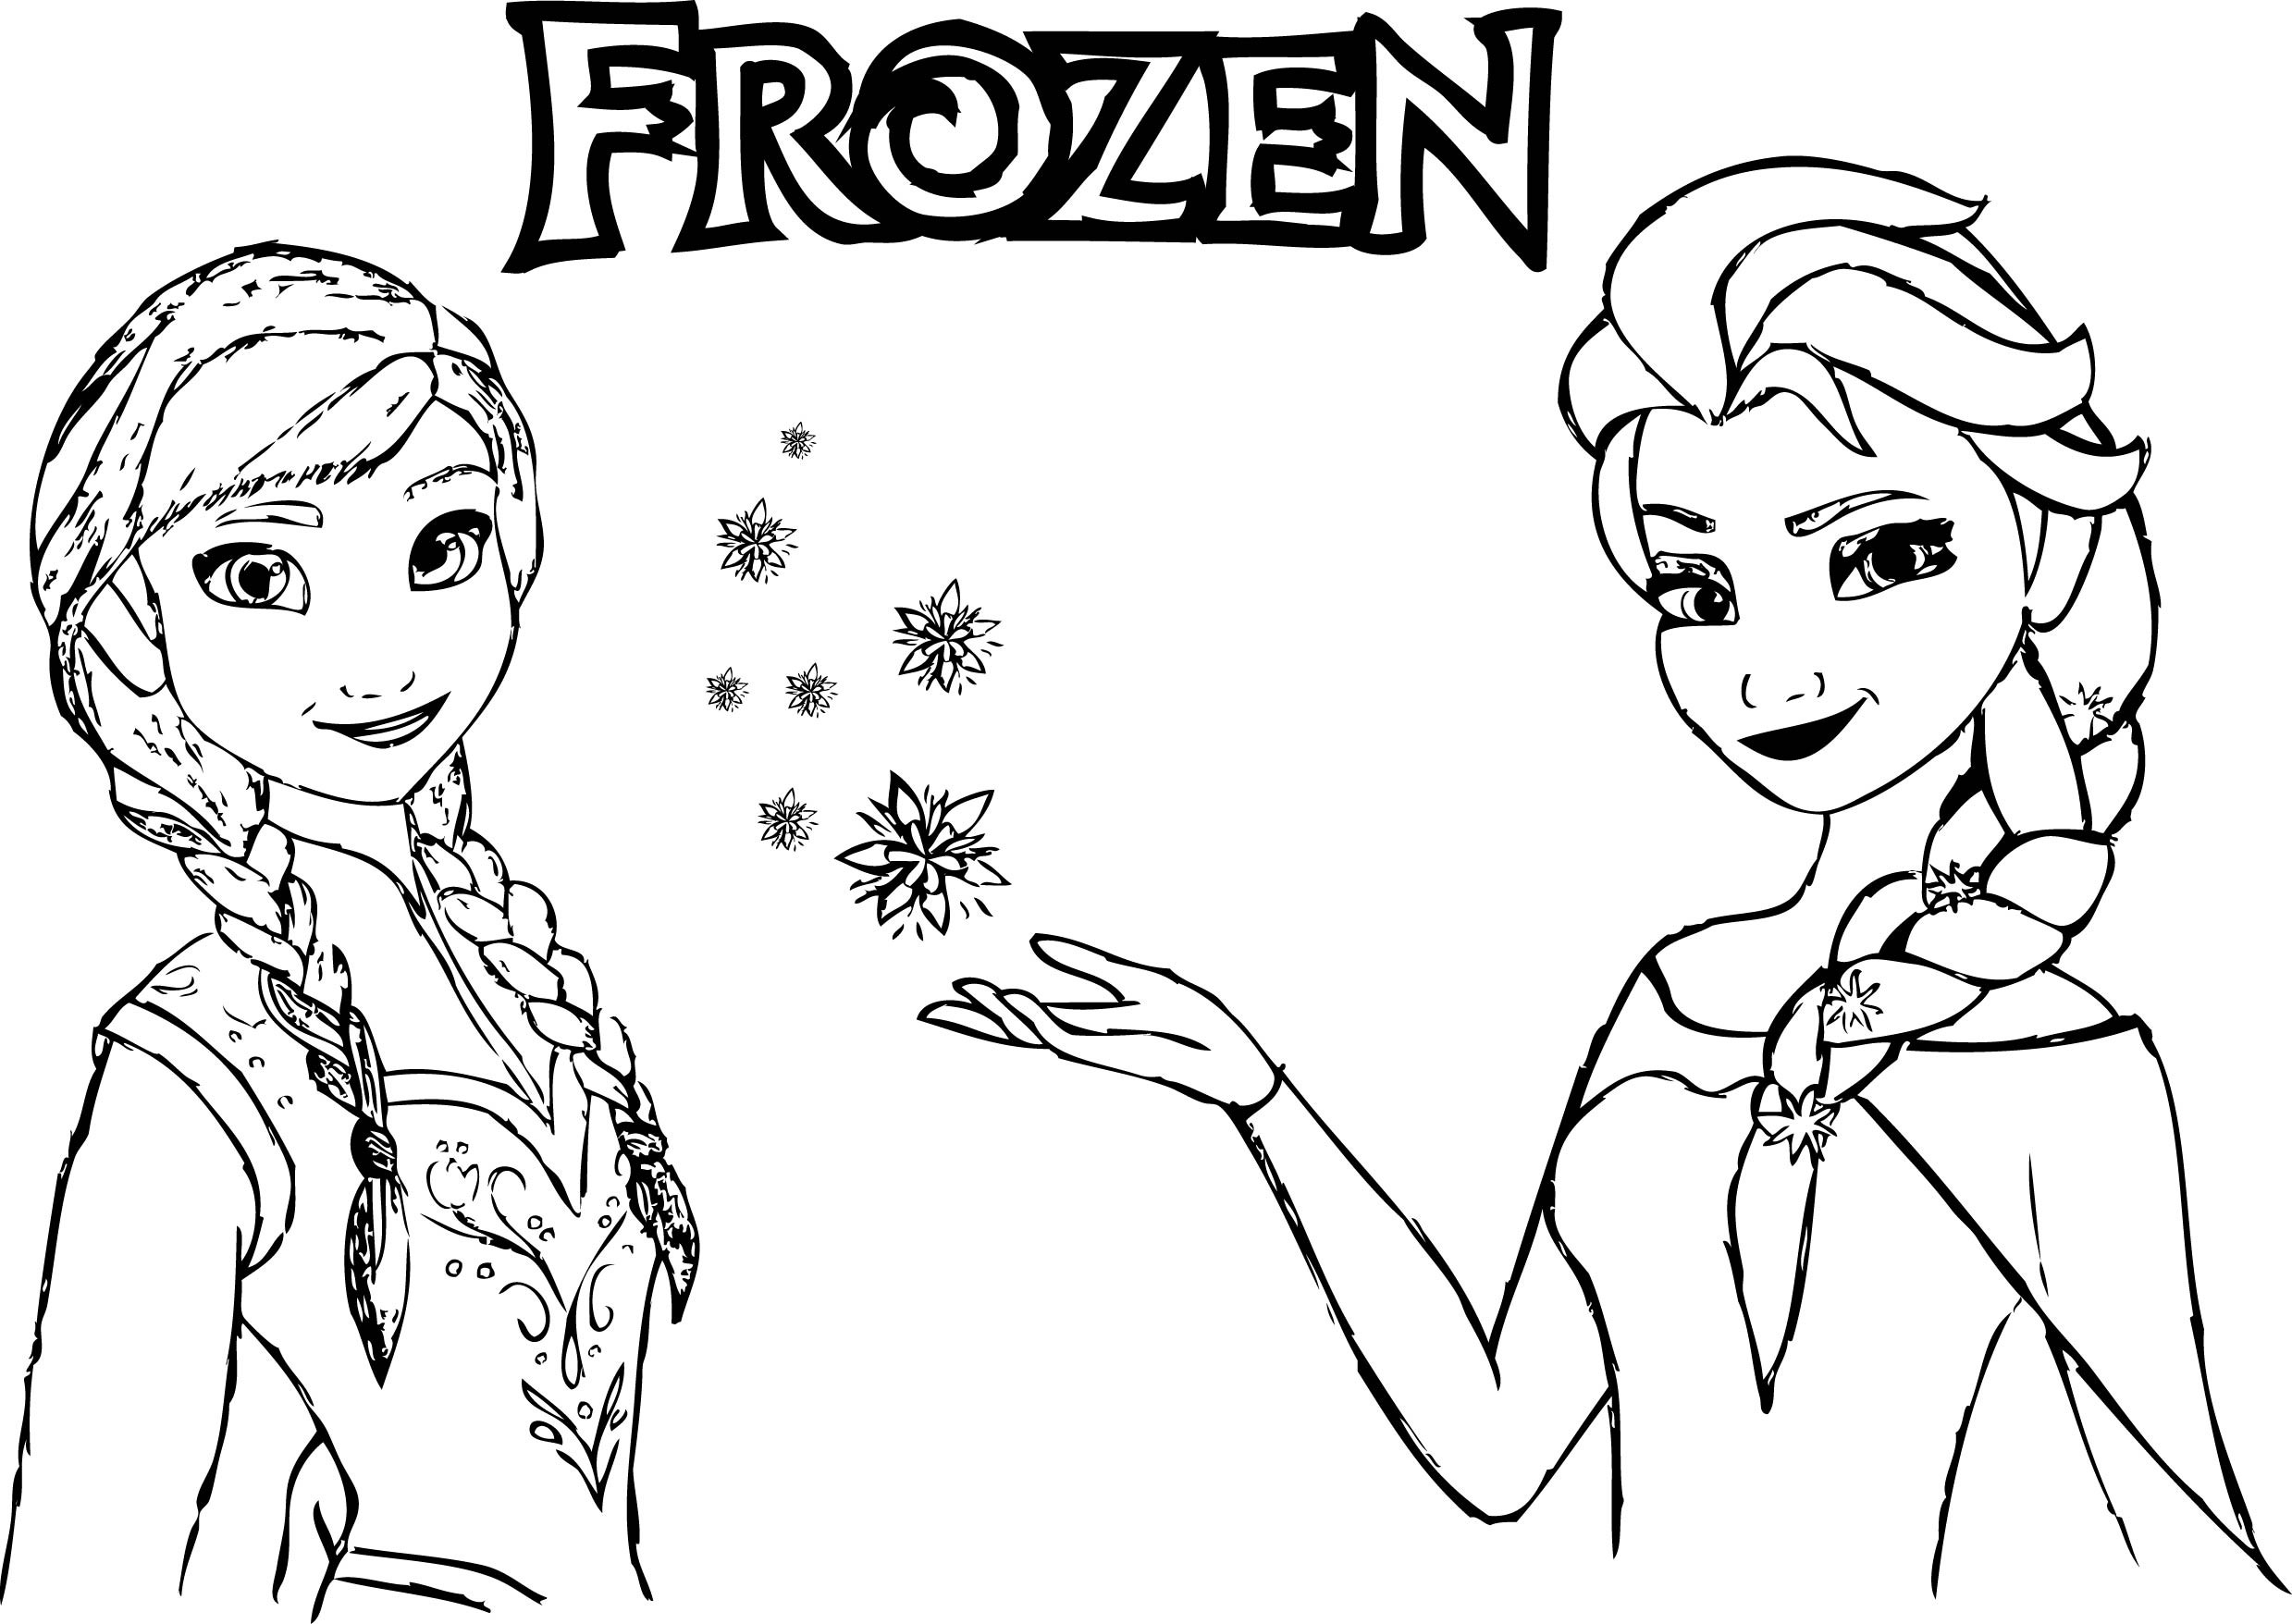 Elsa Frozen Coloring Pages  Frozen Anna Elsa Magic Coloring